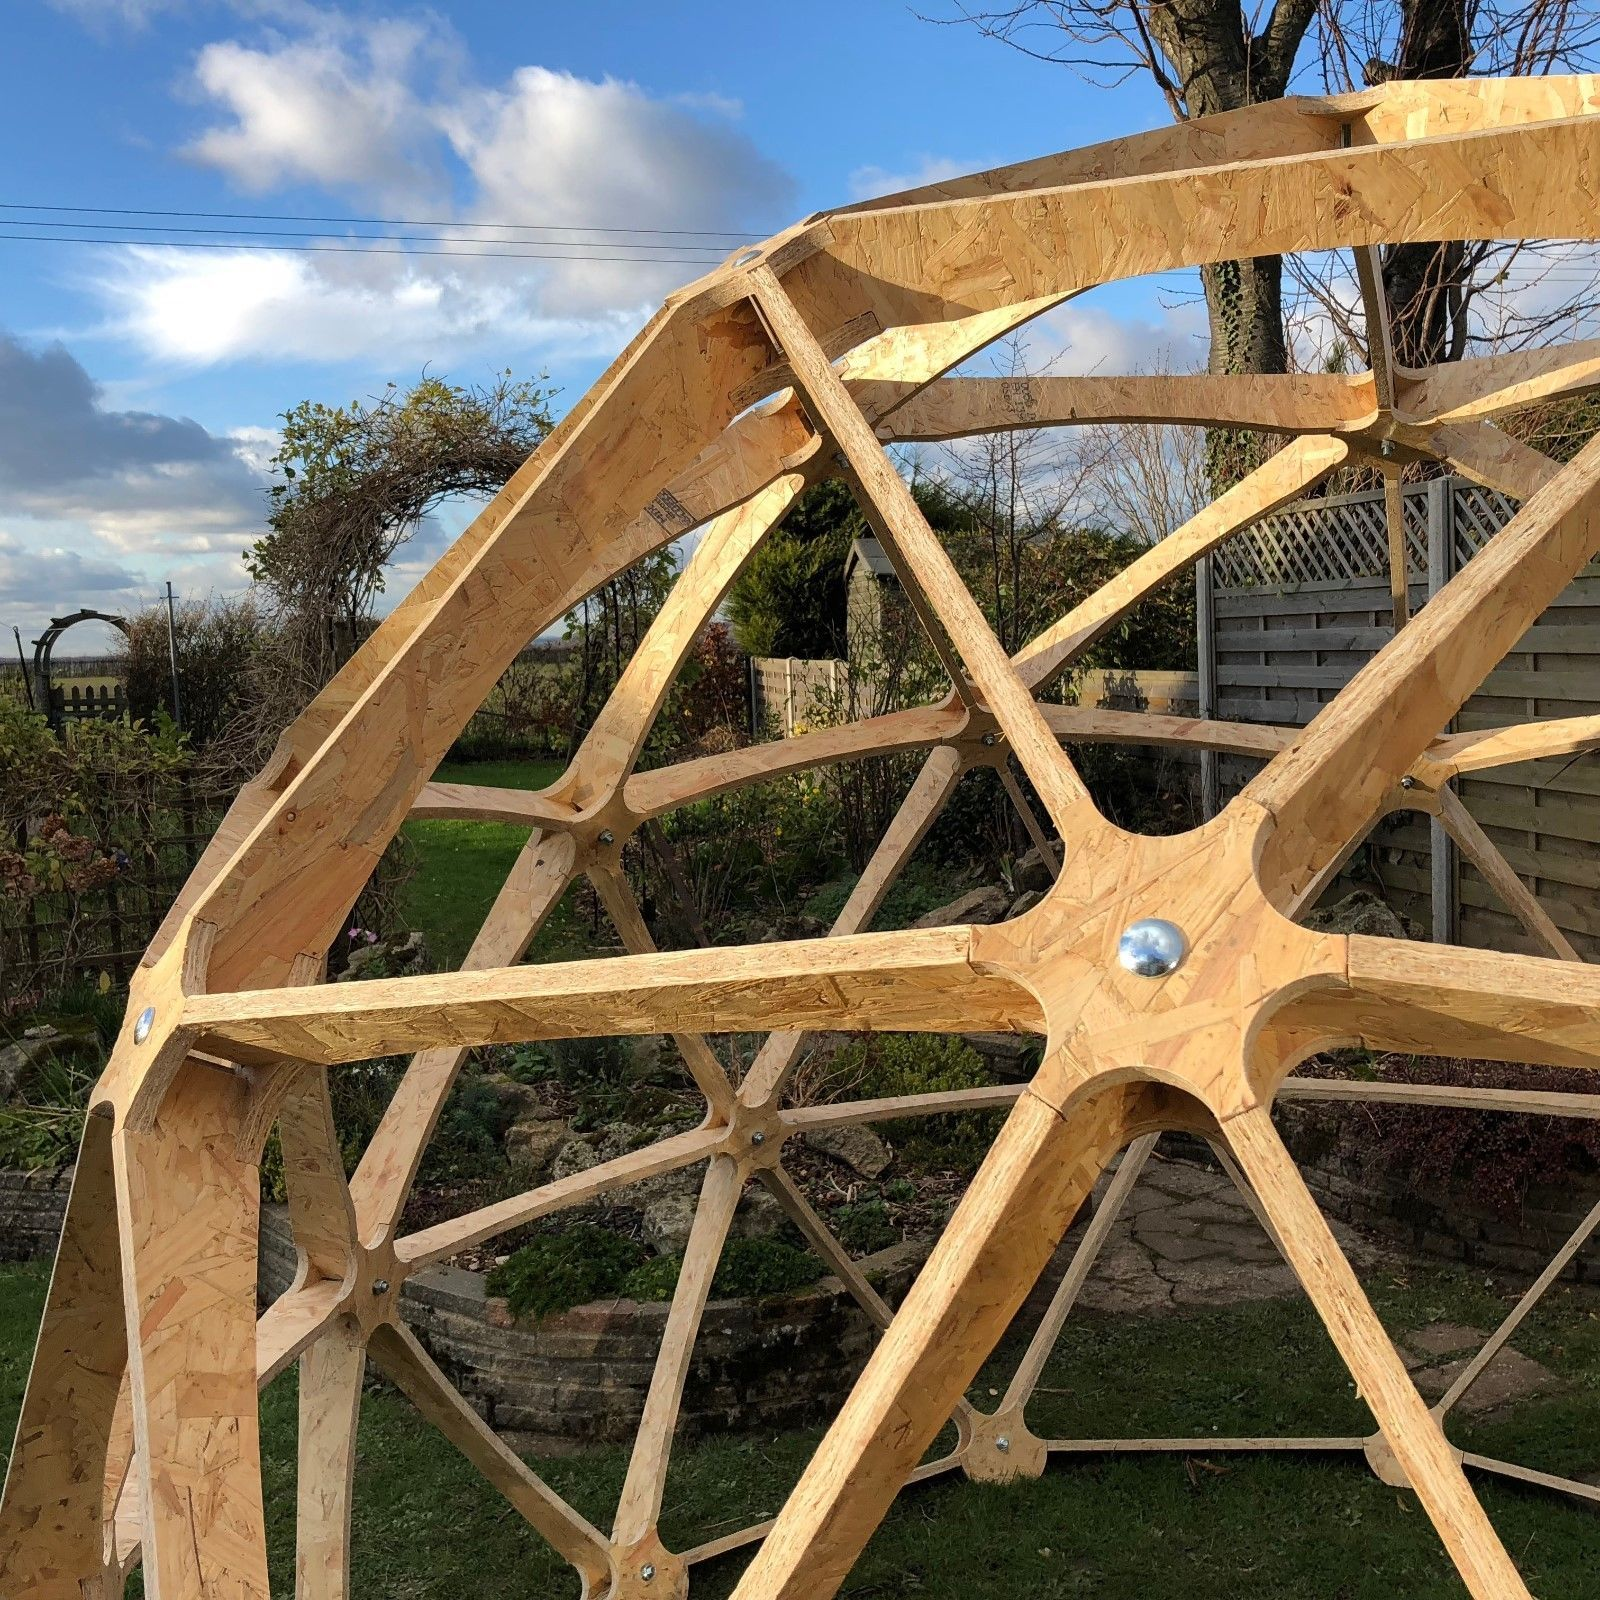 Project Gridless Geodesic Homes: Details About Geodesic Dome V2 3/4 With Door